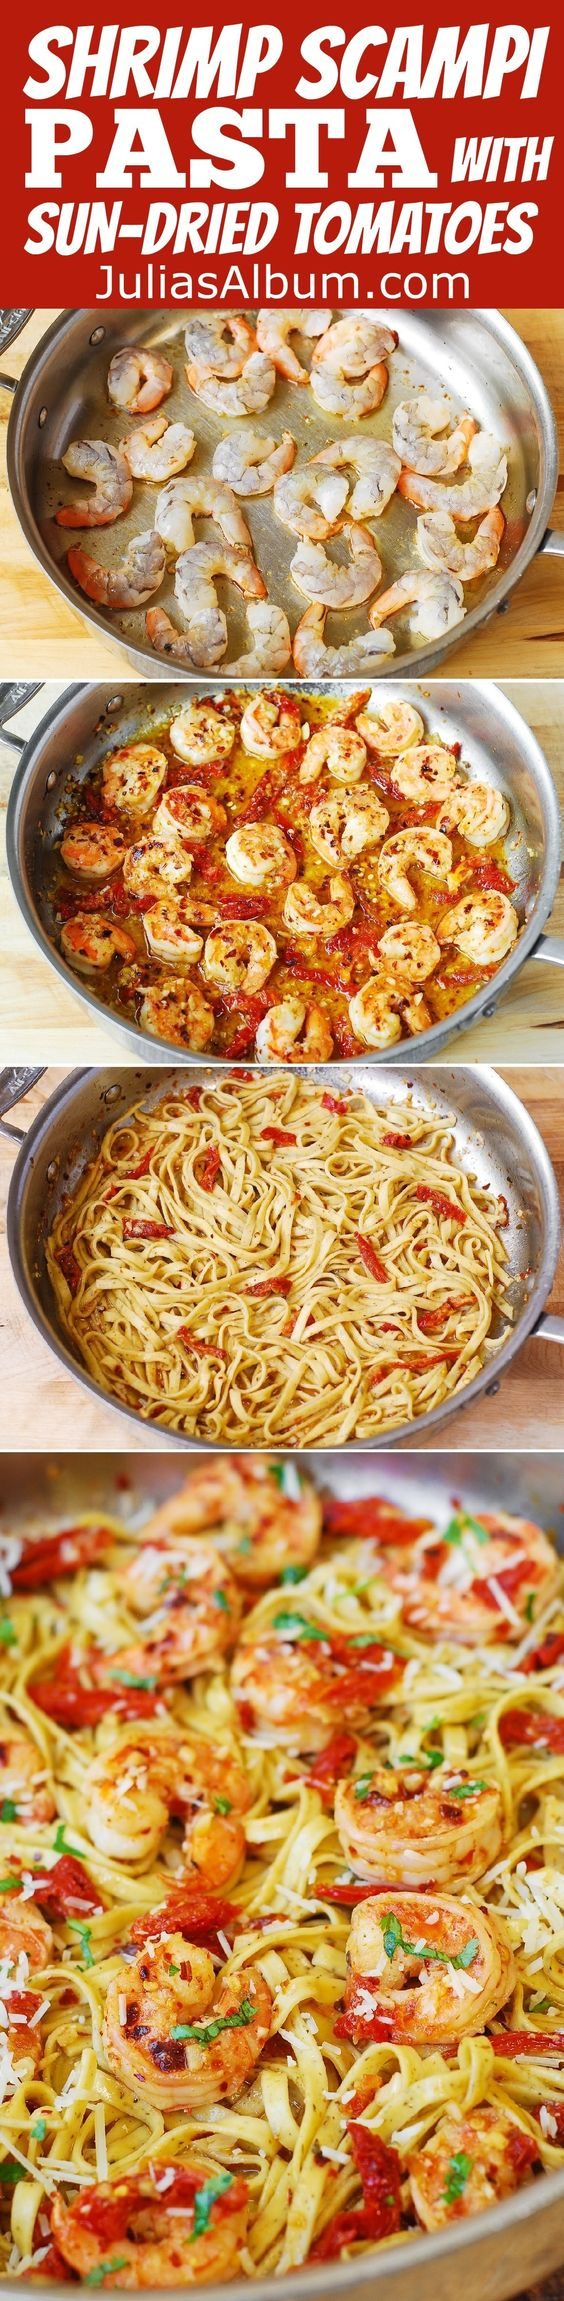 Shrimp Scampi Pasta with Sun-Dried Tomatoes | Recipe | Summer ...